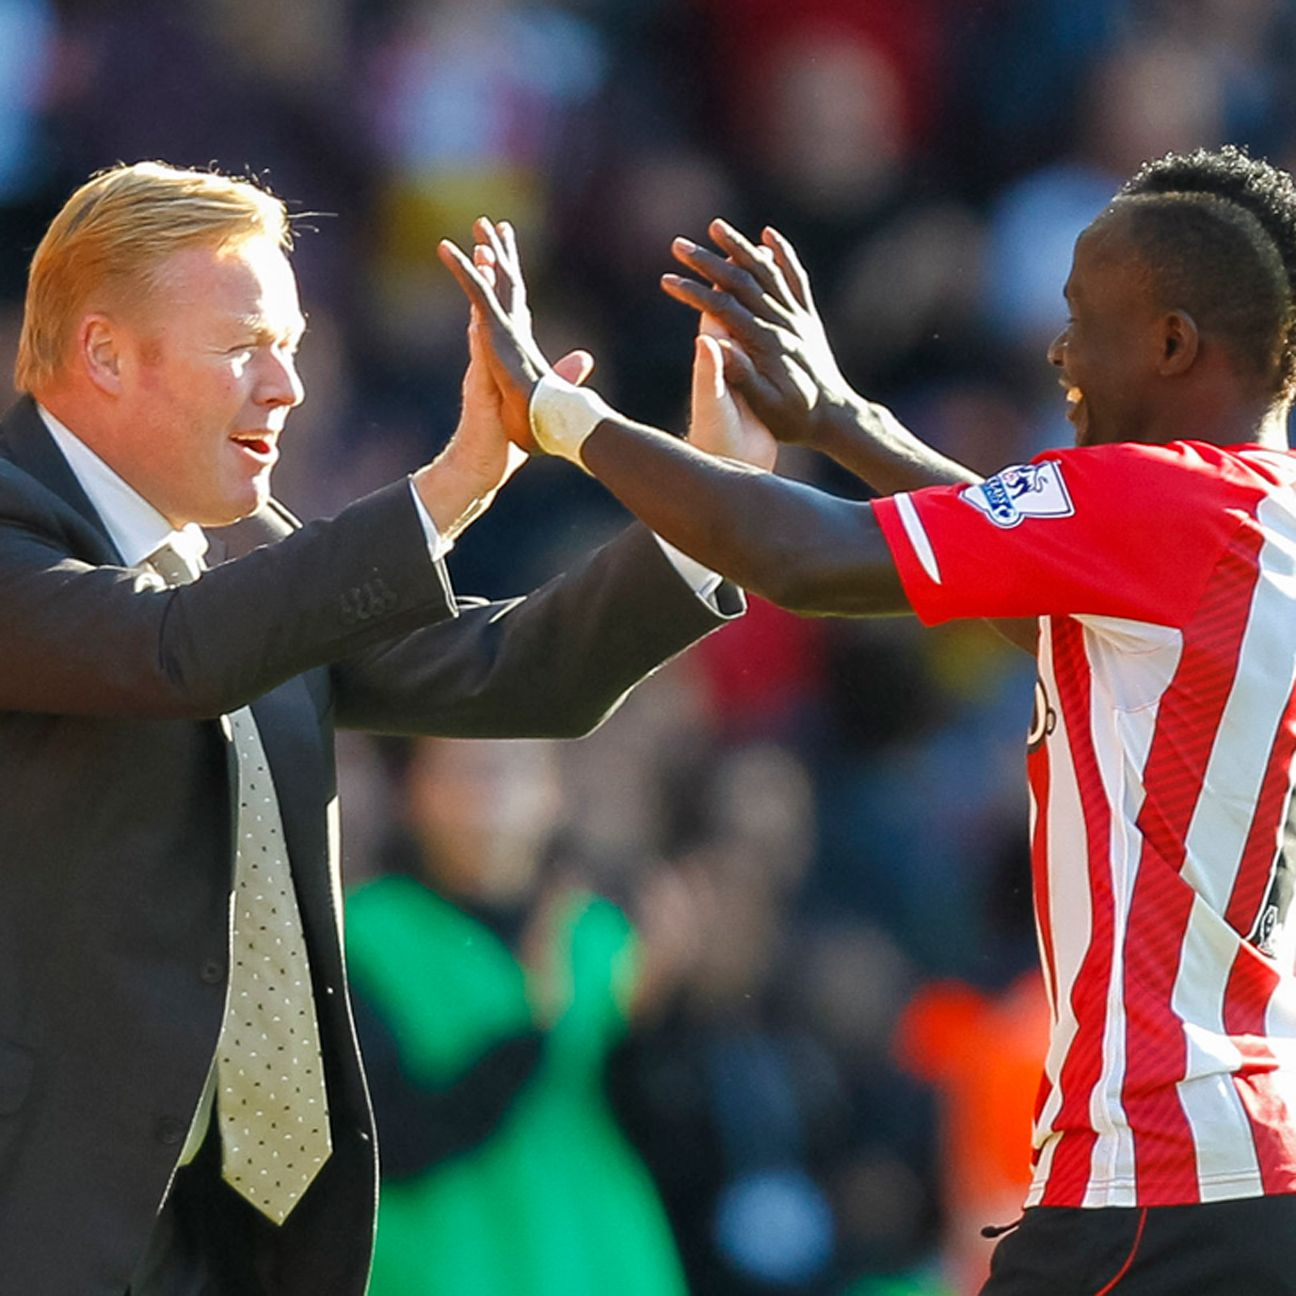 Southampton boss Ronaldo Koeman will be hoping for another big effort from Sadio Mane & Co. versus Sunderland.